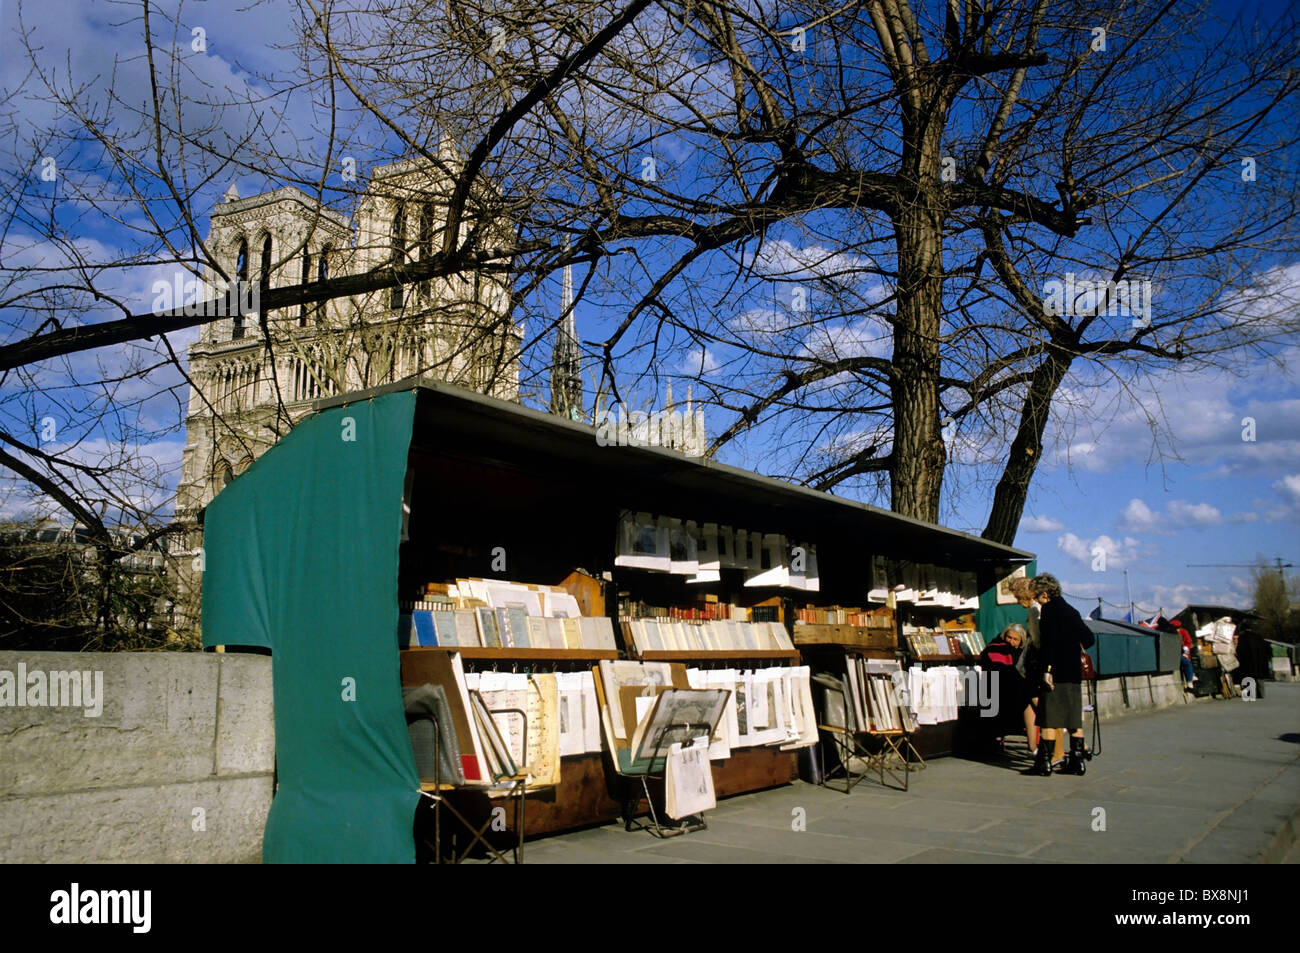 Paris, Left Bank : Books on display on a book stall in front of Notre Dame de Paris, Paris, France. - Stock Image